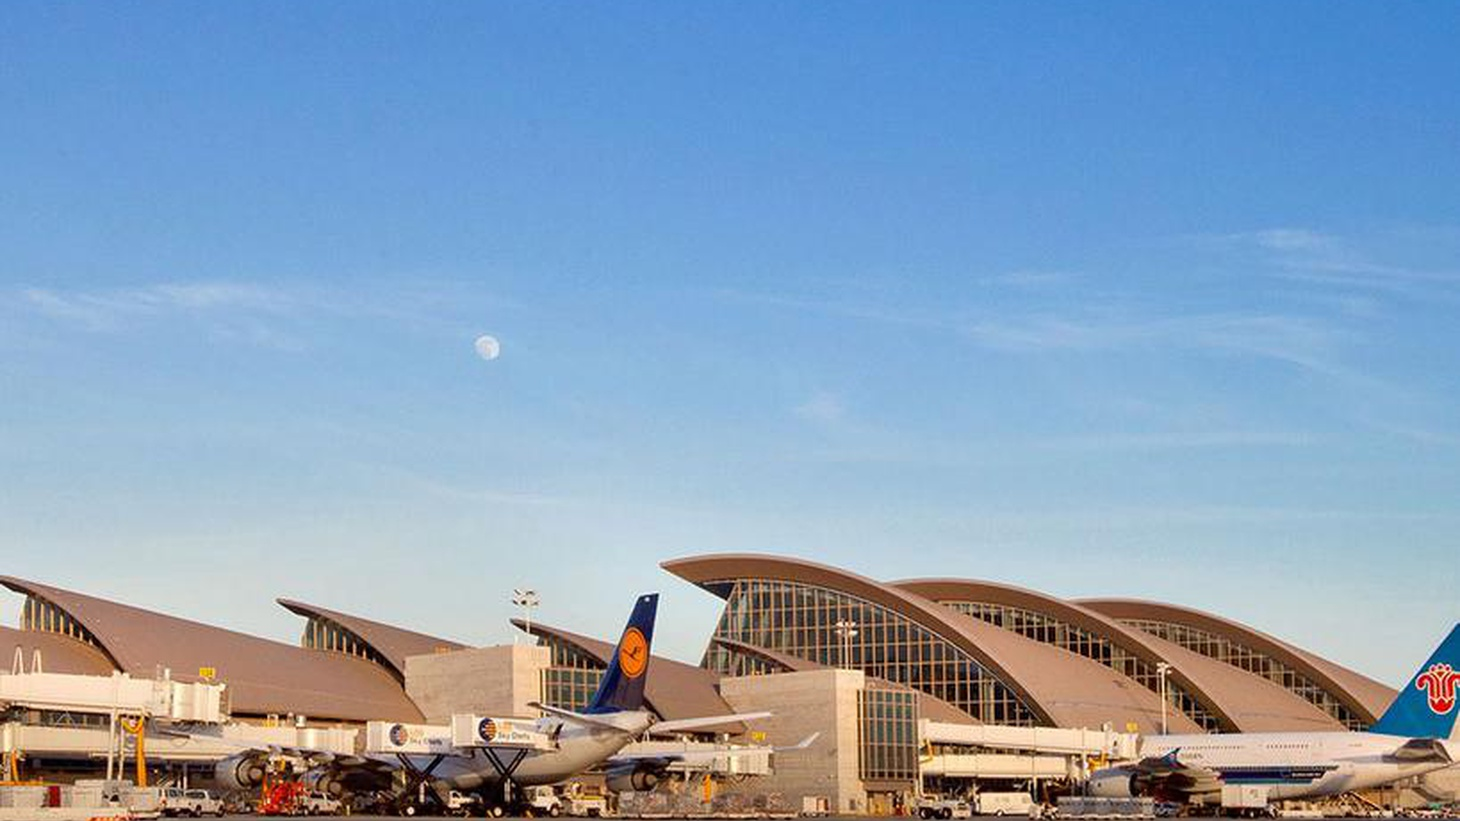 The new, $1.9B Tom Bradley International Terminal opened today, designed to reflect LA and attract travelers from Asia — where they're used to the world's best airports.